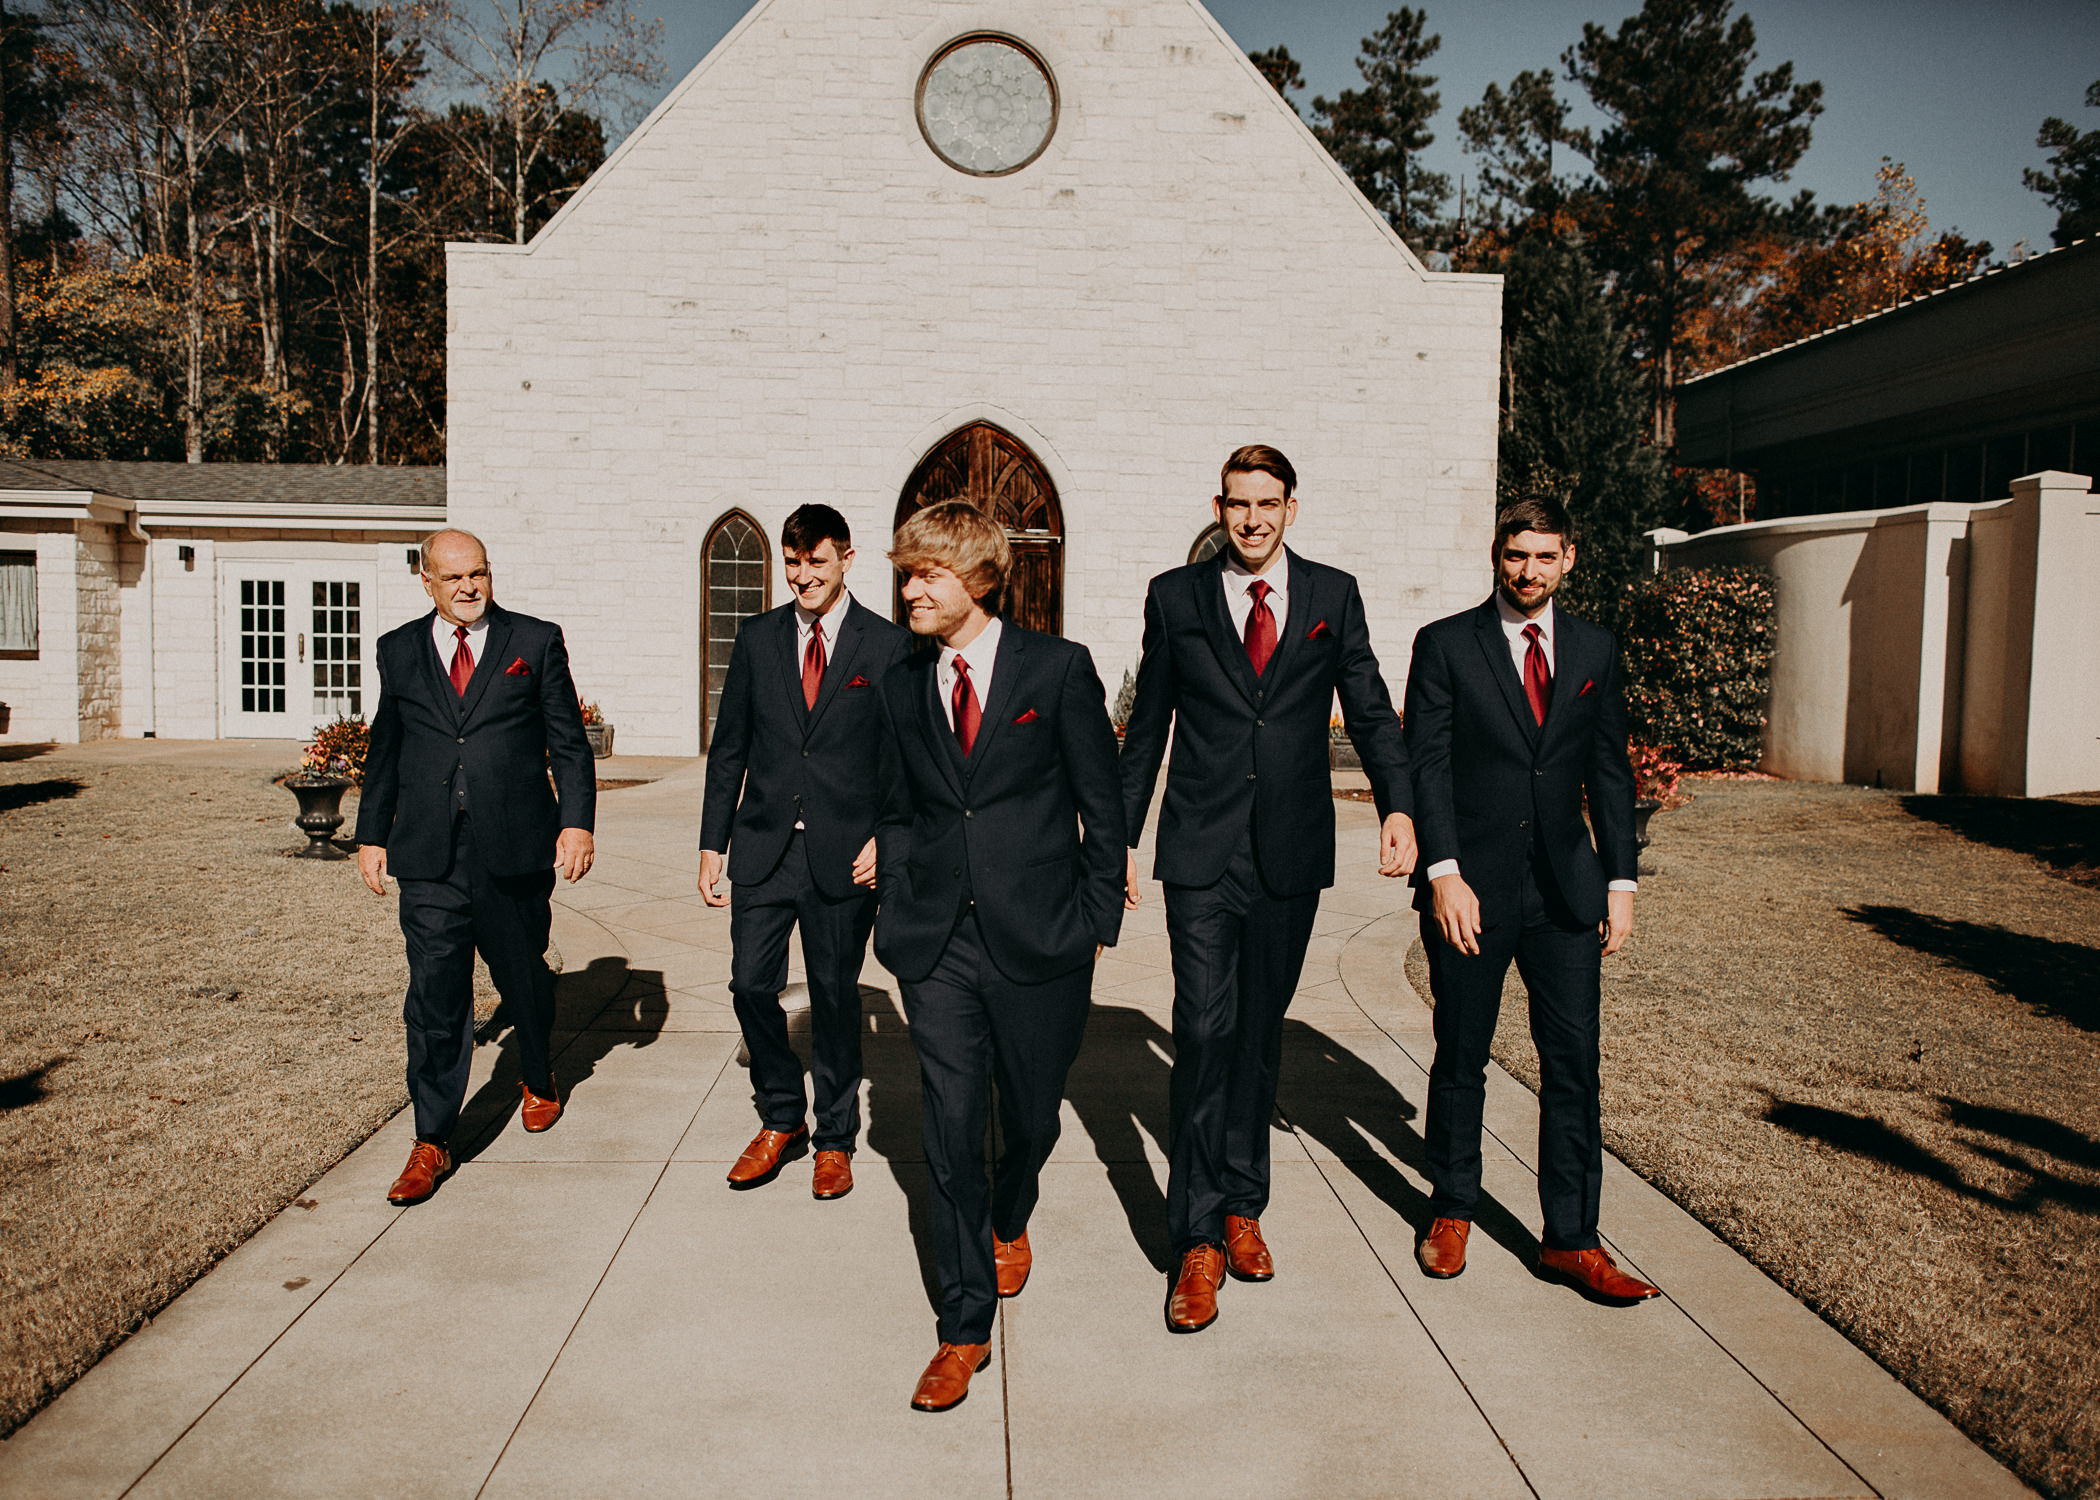 9 - Wedding Day Atlanta Photographer : Getting Ready, Ceremony, Reception, Bride and Groom, Wedding Party. .jpg